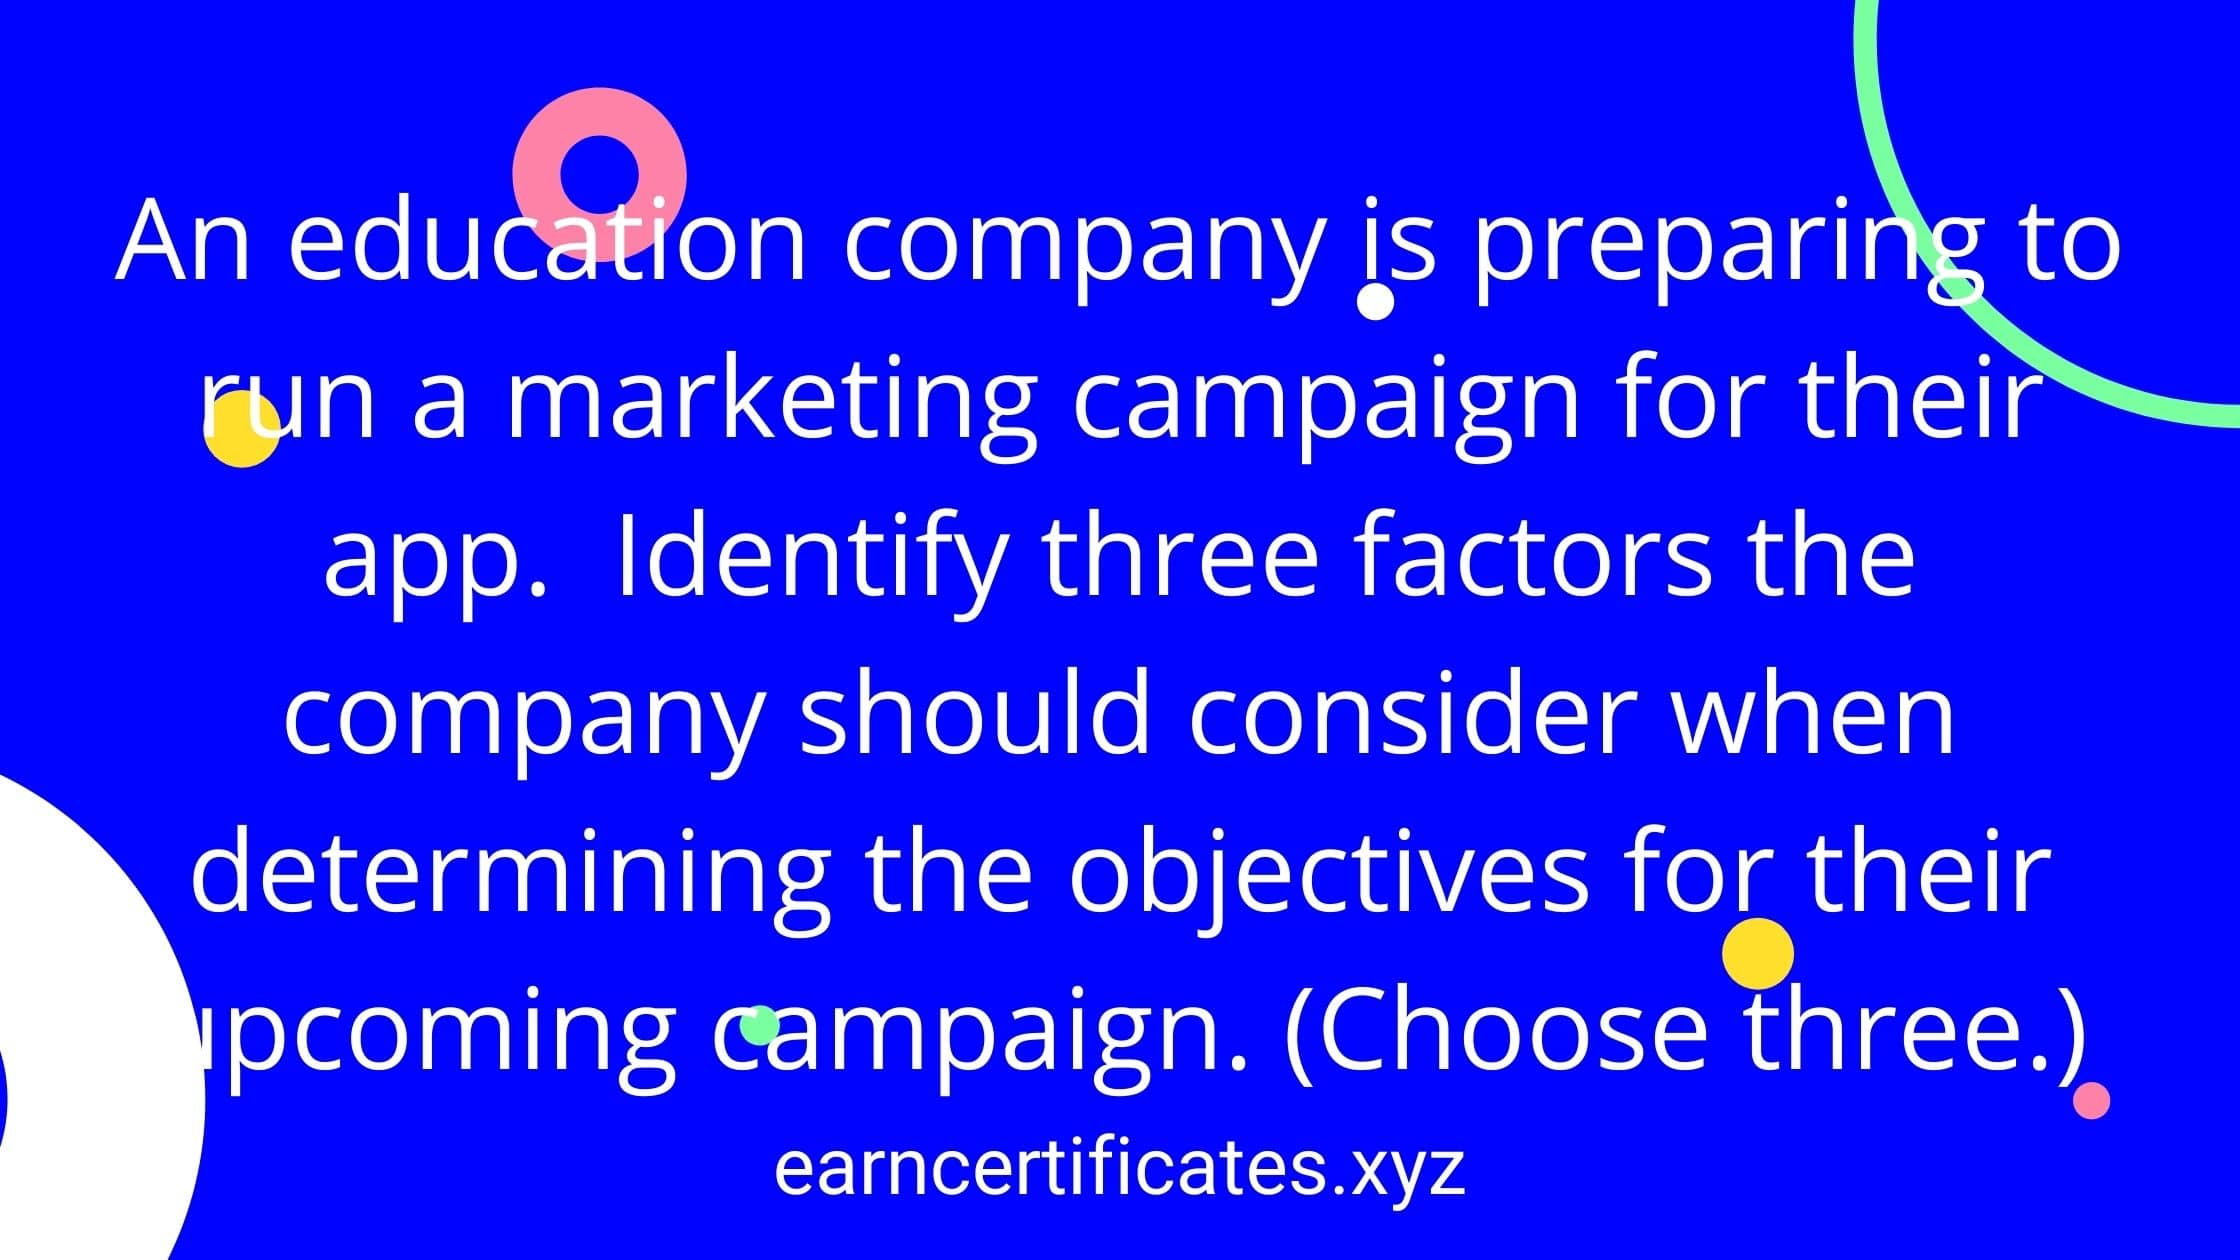 An education company is preparing to run a marketing campaign for their app. Identify three factors the company should consider when determining the objectives for their upcoming campaign. (Choose three.)